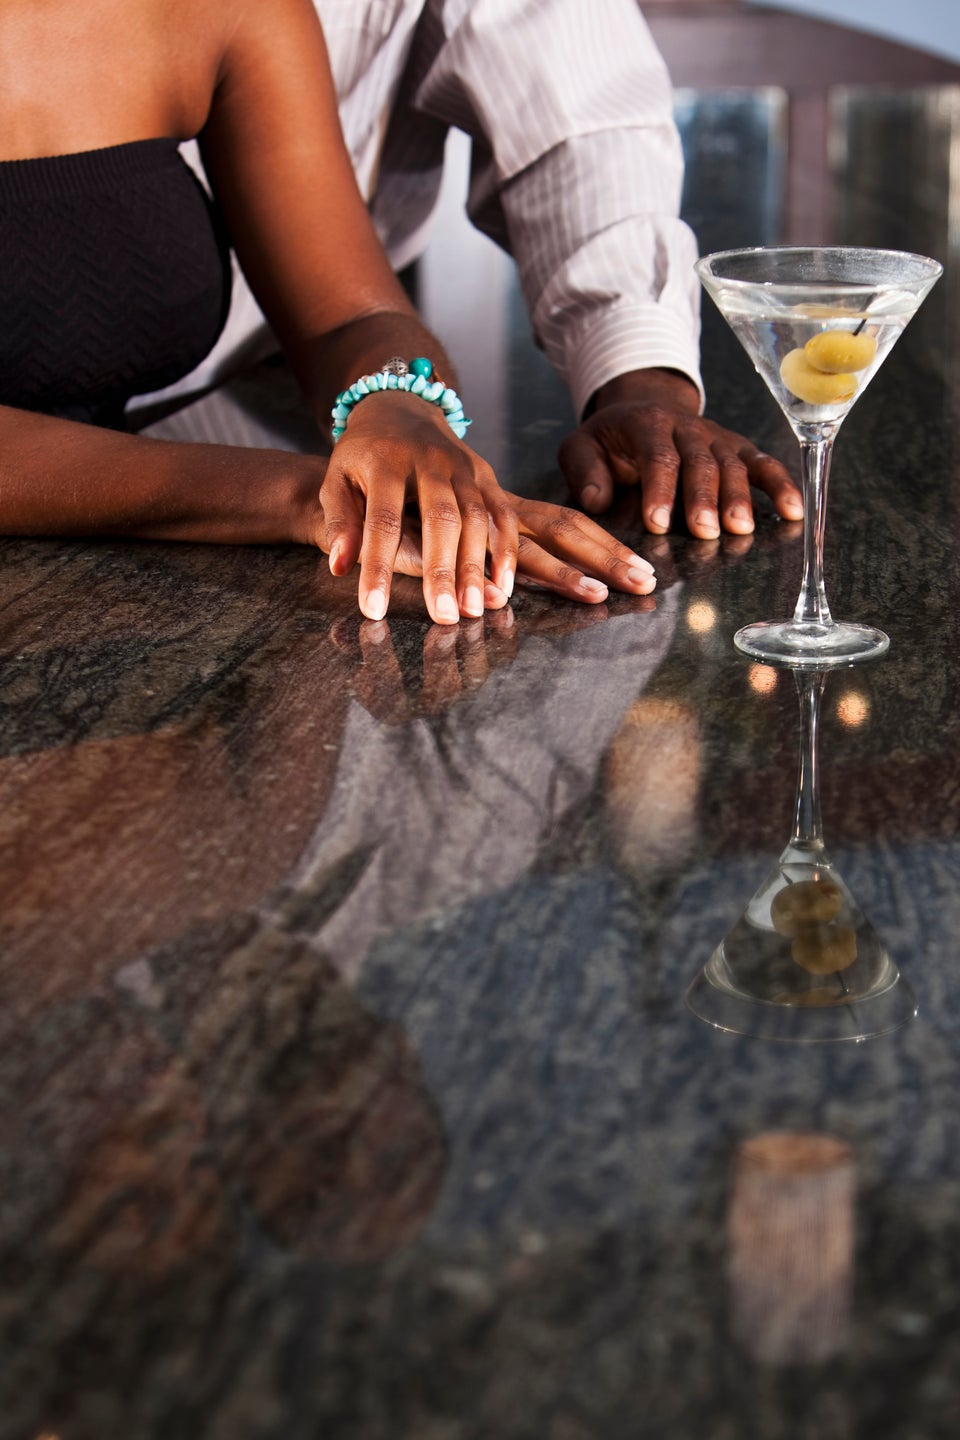 Texas Restaurant Under Fire For Kicking Out Black Couple To Seat A White Man